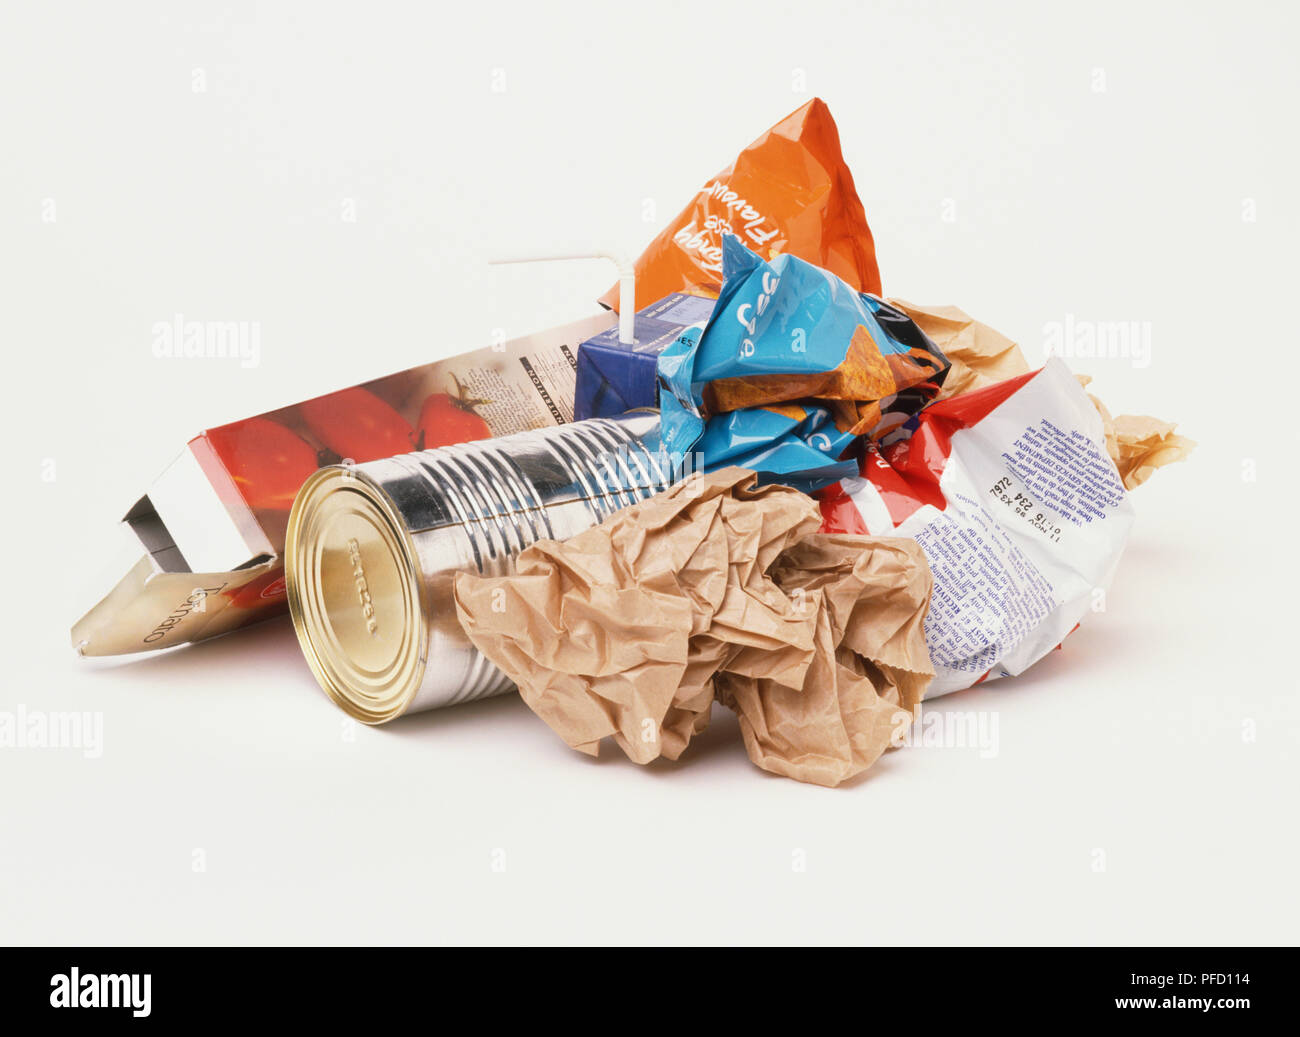 Small pile of litter - Stock Image